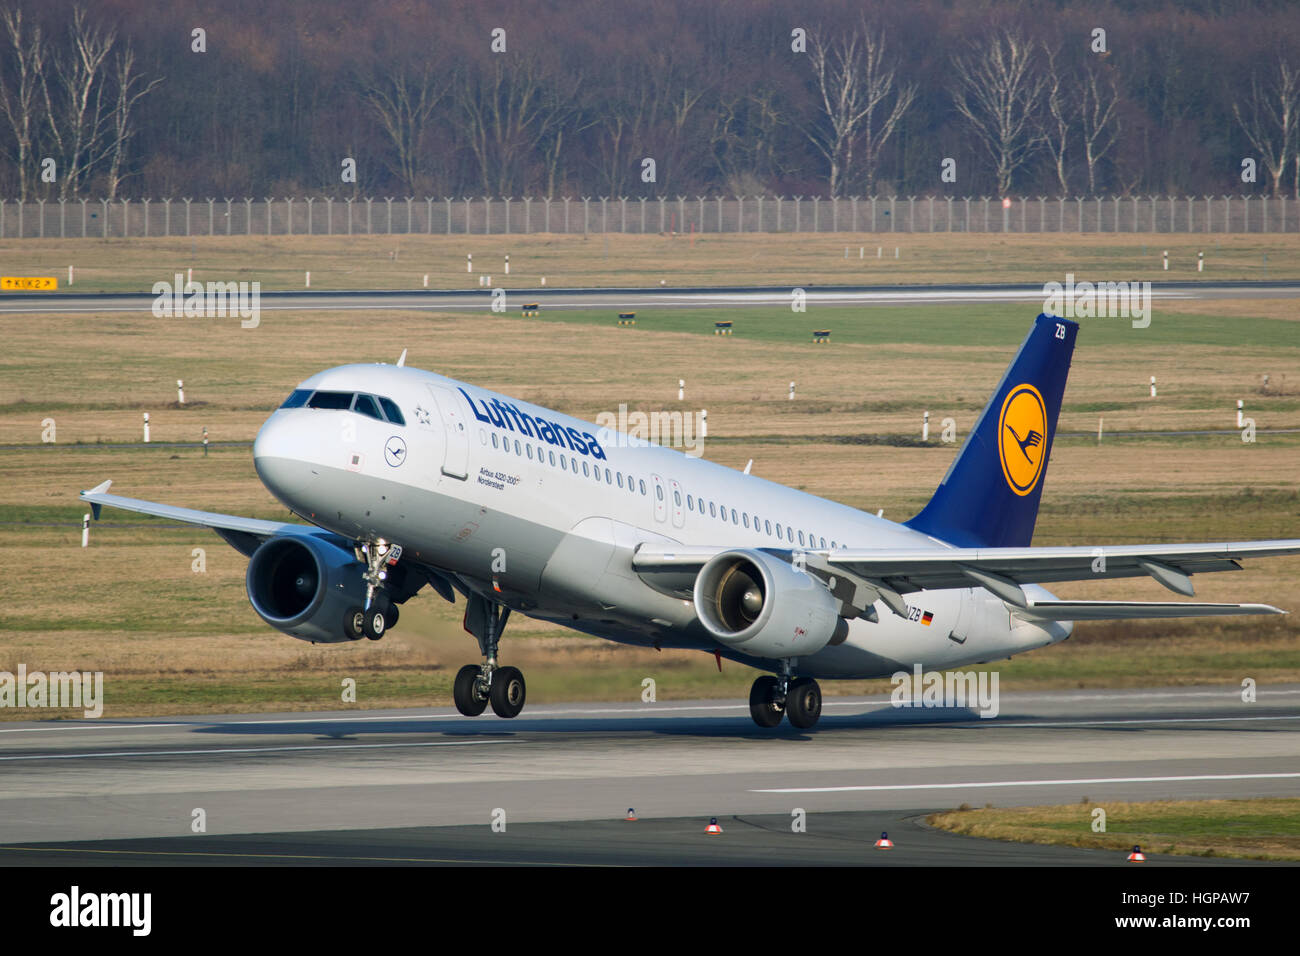 Lufthansa Airbus A320-200 departing from Dusseldorf airport. - Stock Image